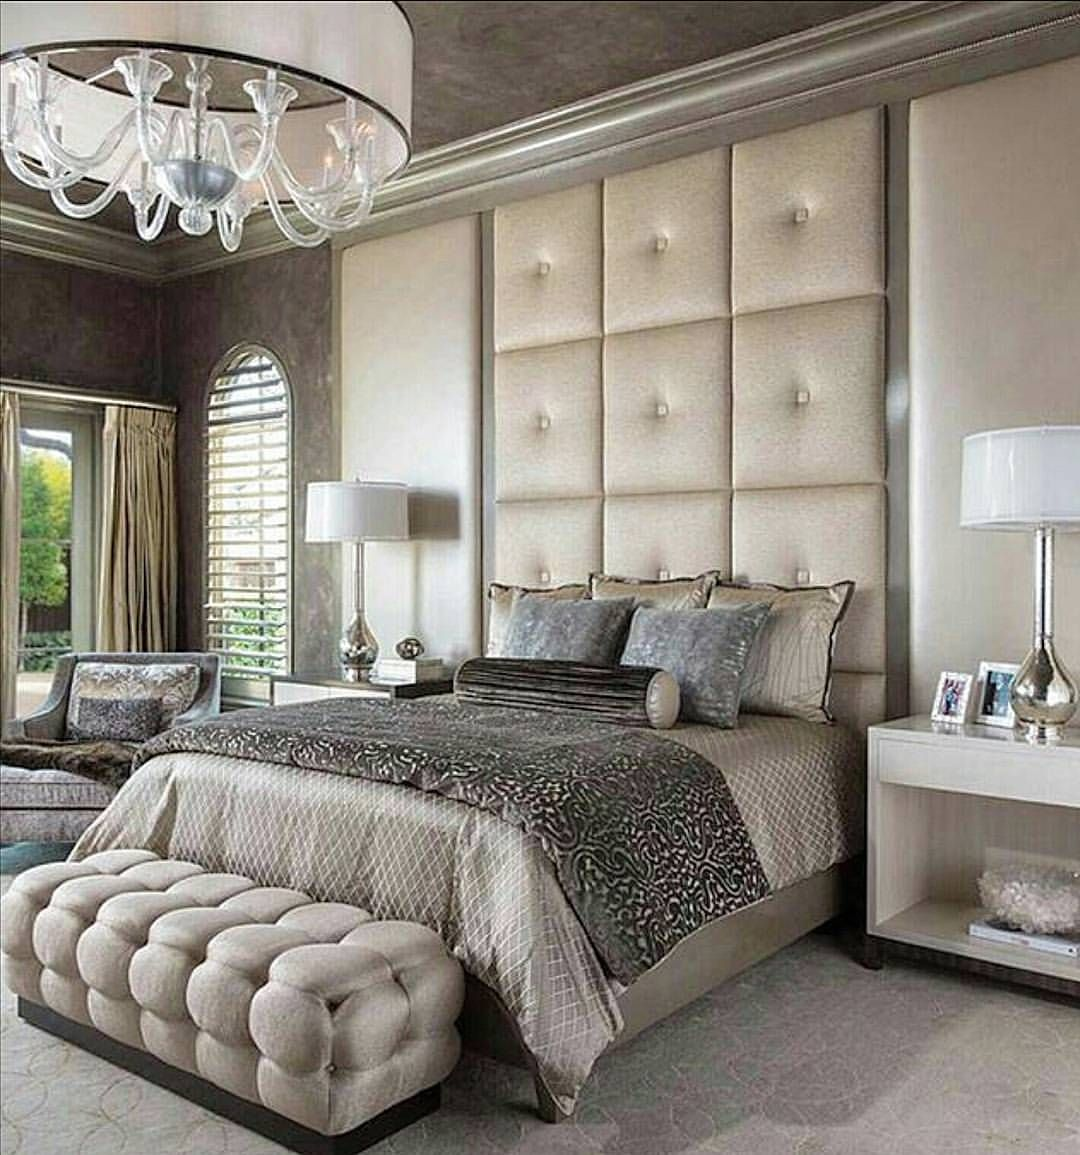 Beautiful bedroom with soothing colors & delicate patterns